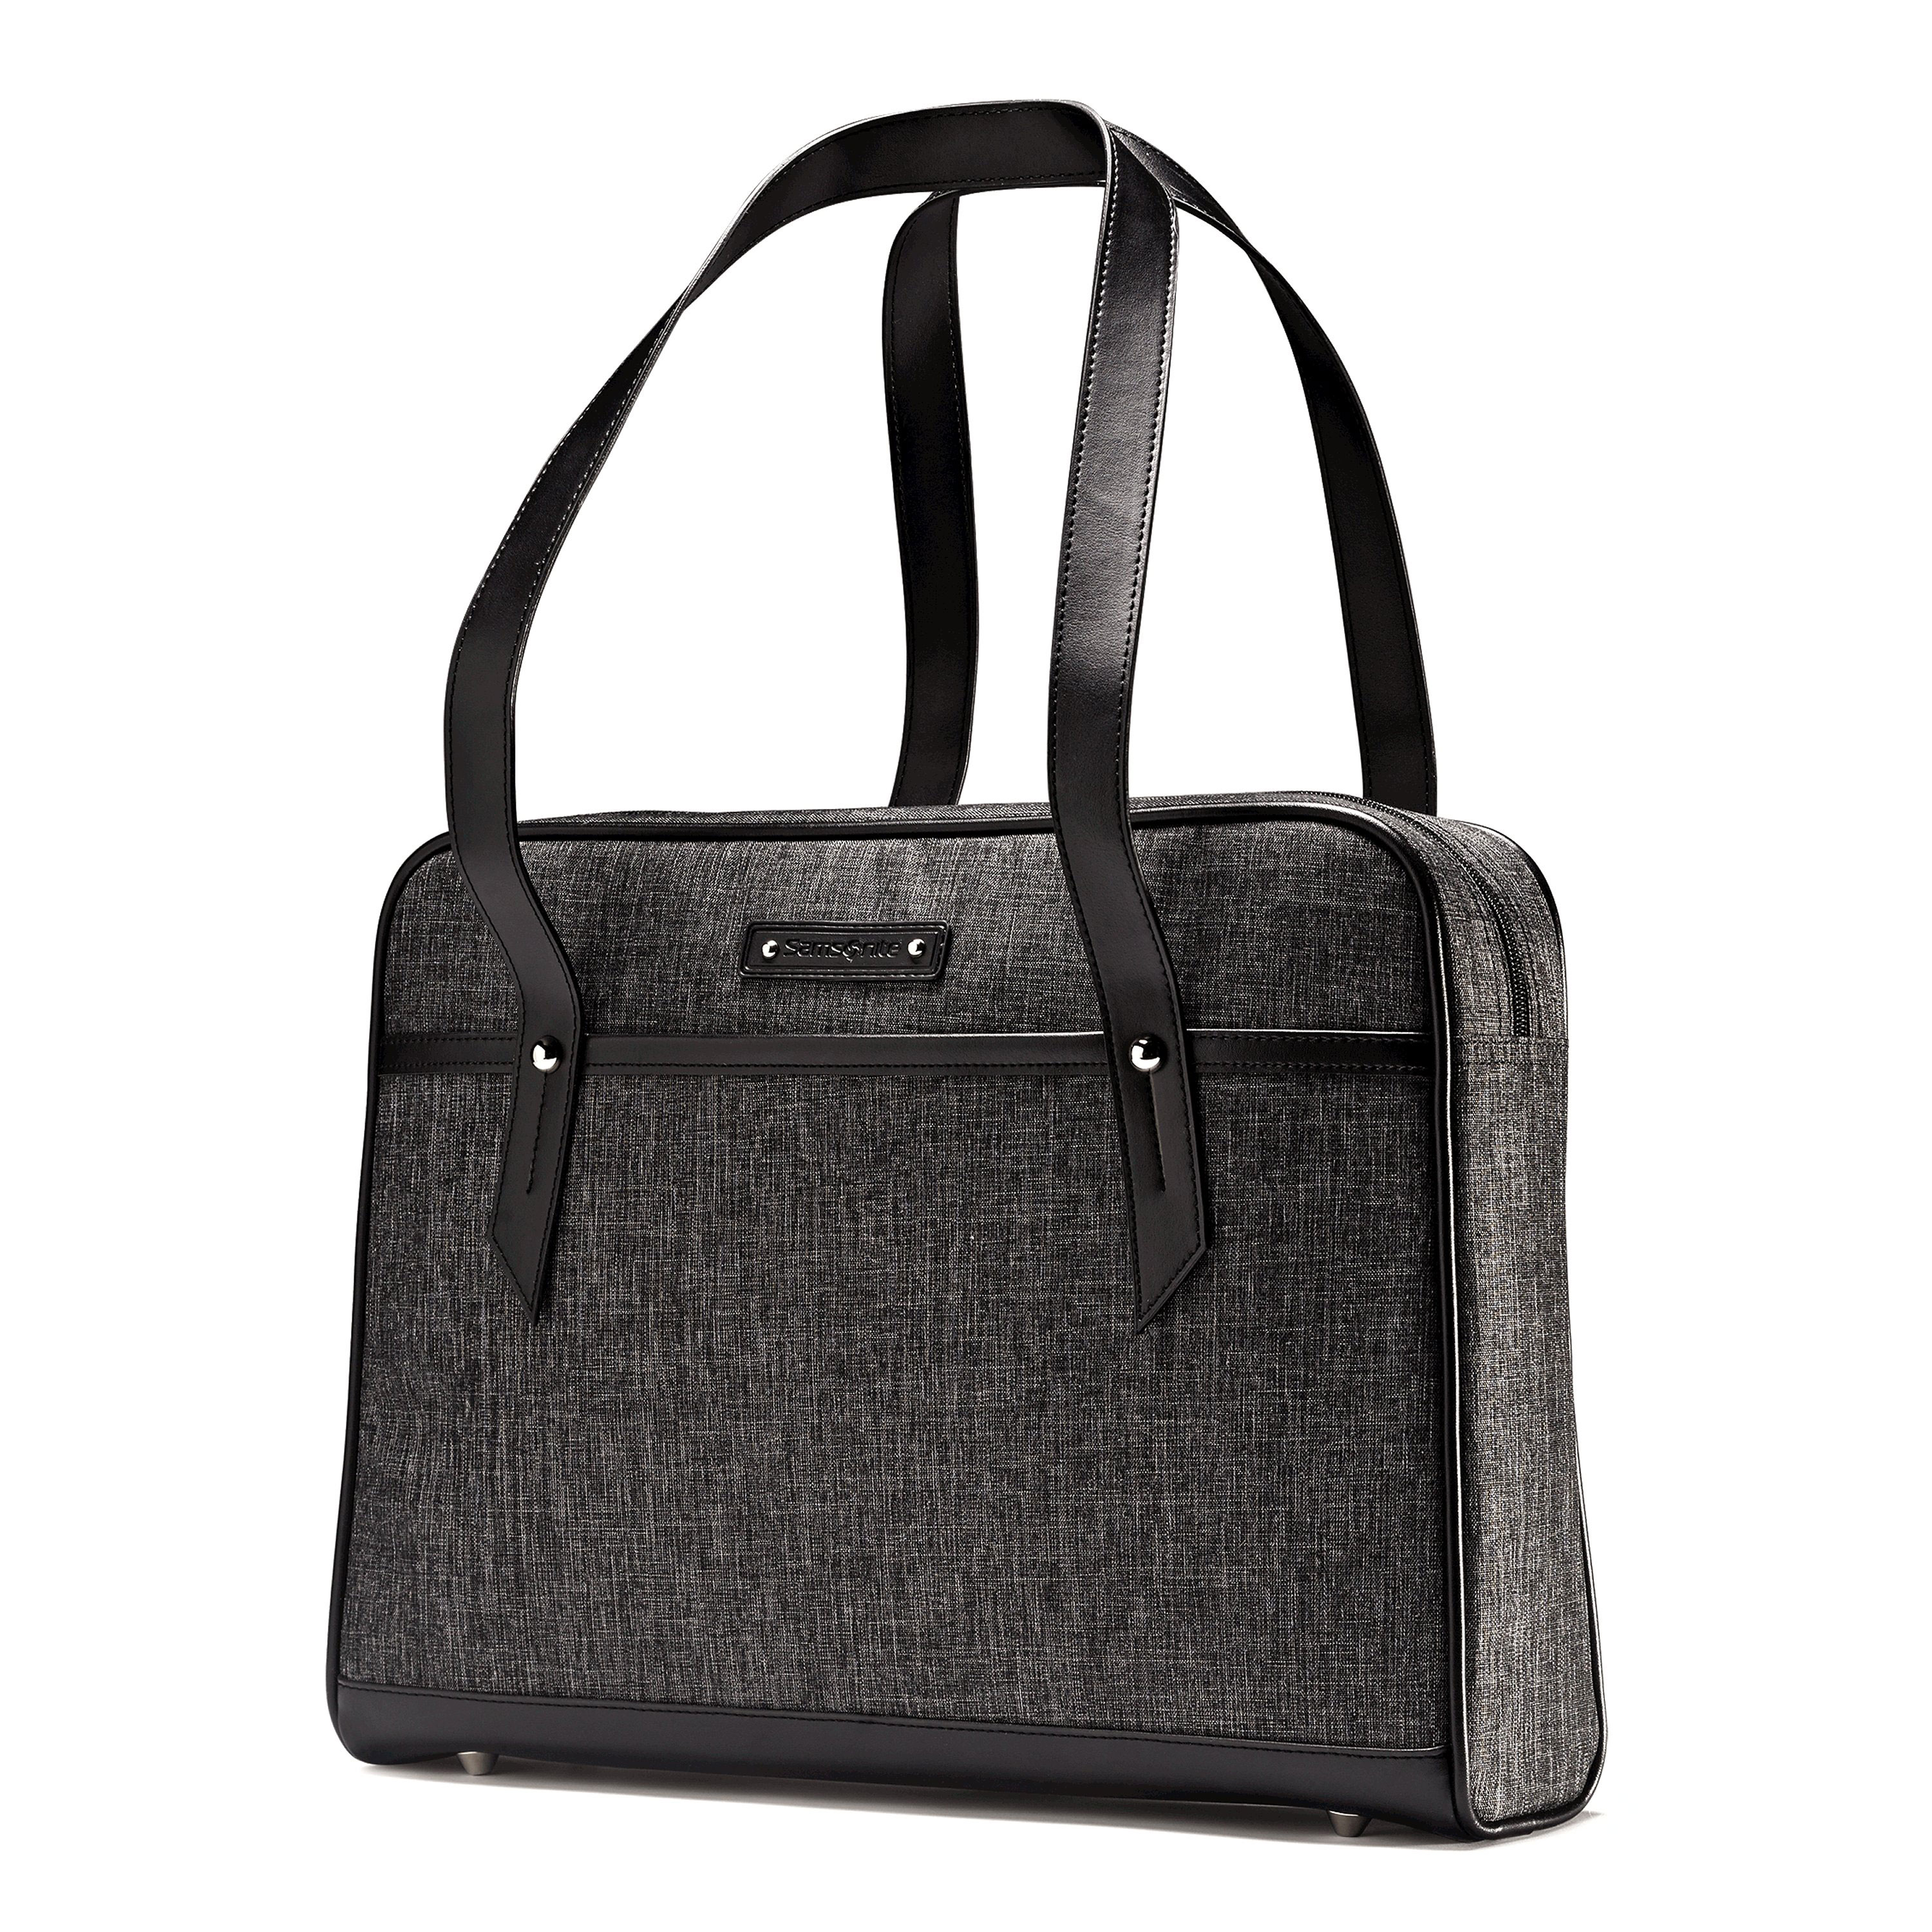 "Padded laptop compartment that will fit most 15.6"" laptops. Tablet pocket. Front quick stash pocket. Strap on back of bag to easily attach to upright suitcase handle. Debossed logo. Comfortable shoulder straps. Weight: 1.1 lbs. Body Dimensions: 16.5"" x 12.0"" x 3.5"""